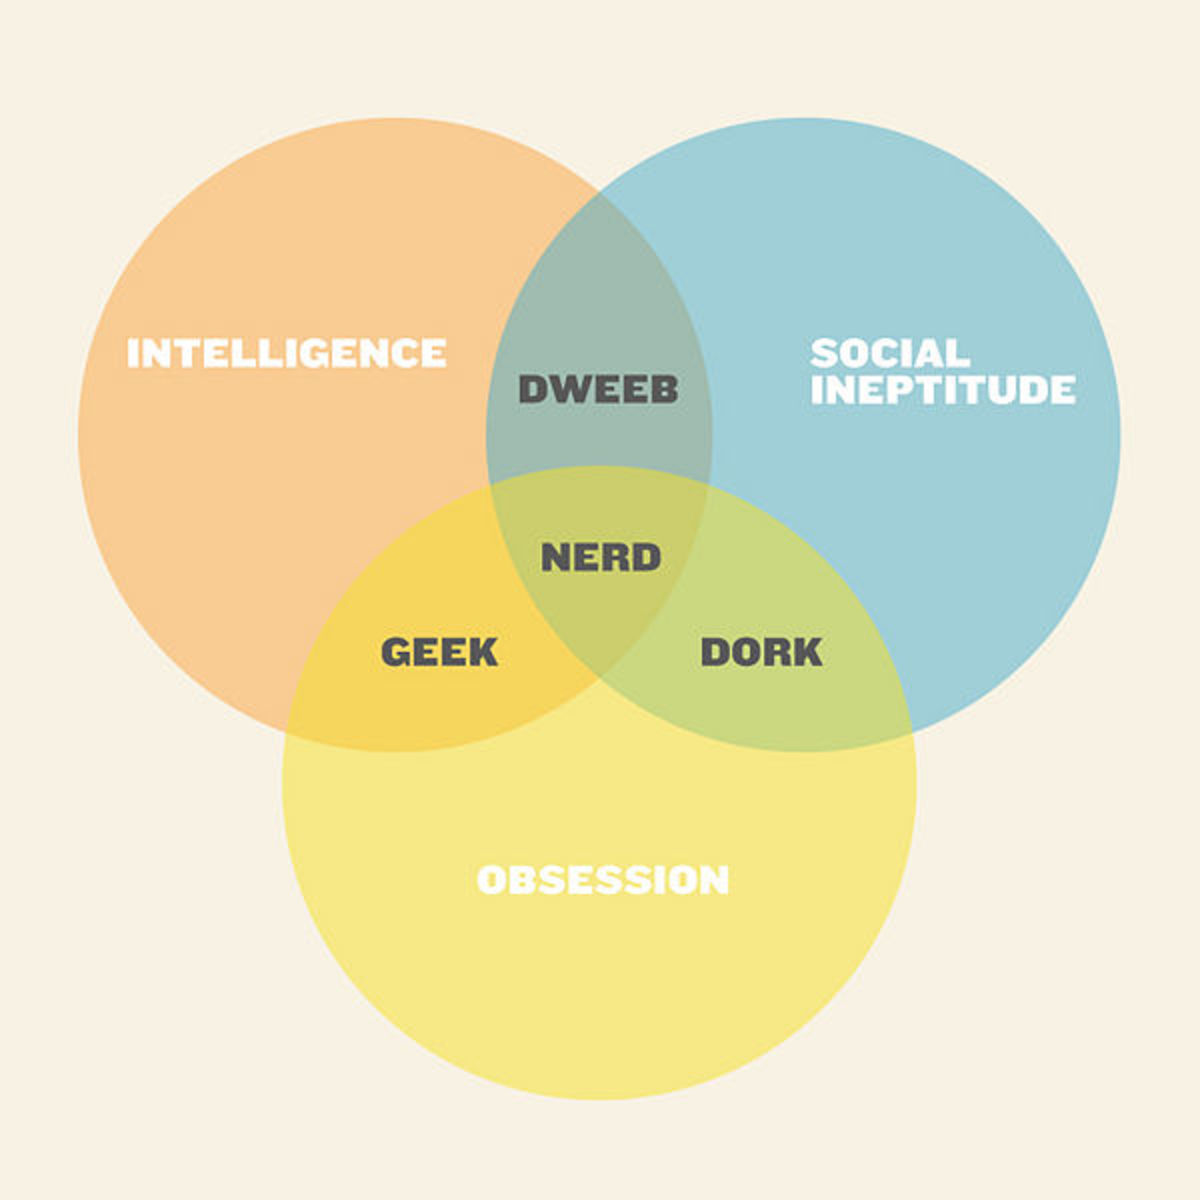 Am ia nerd geek or dork quiz